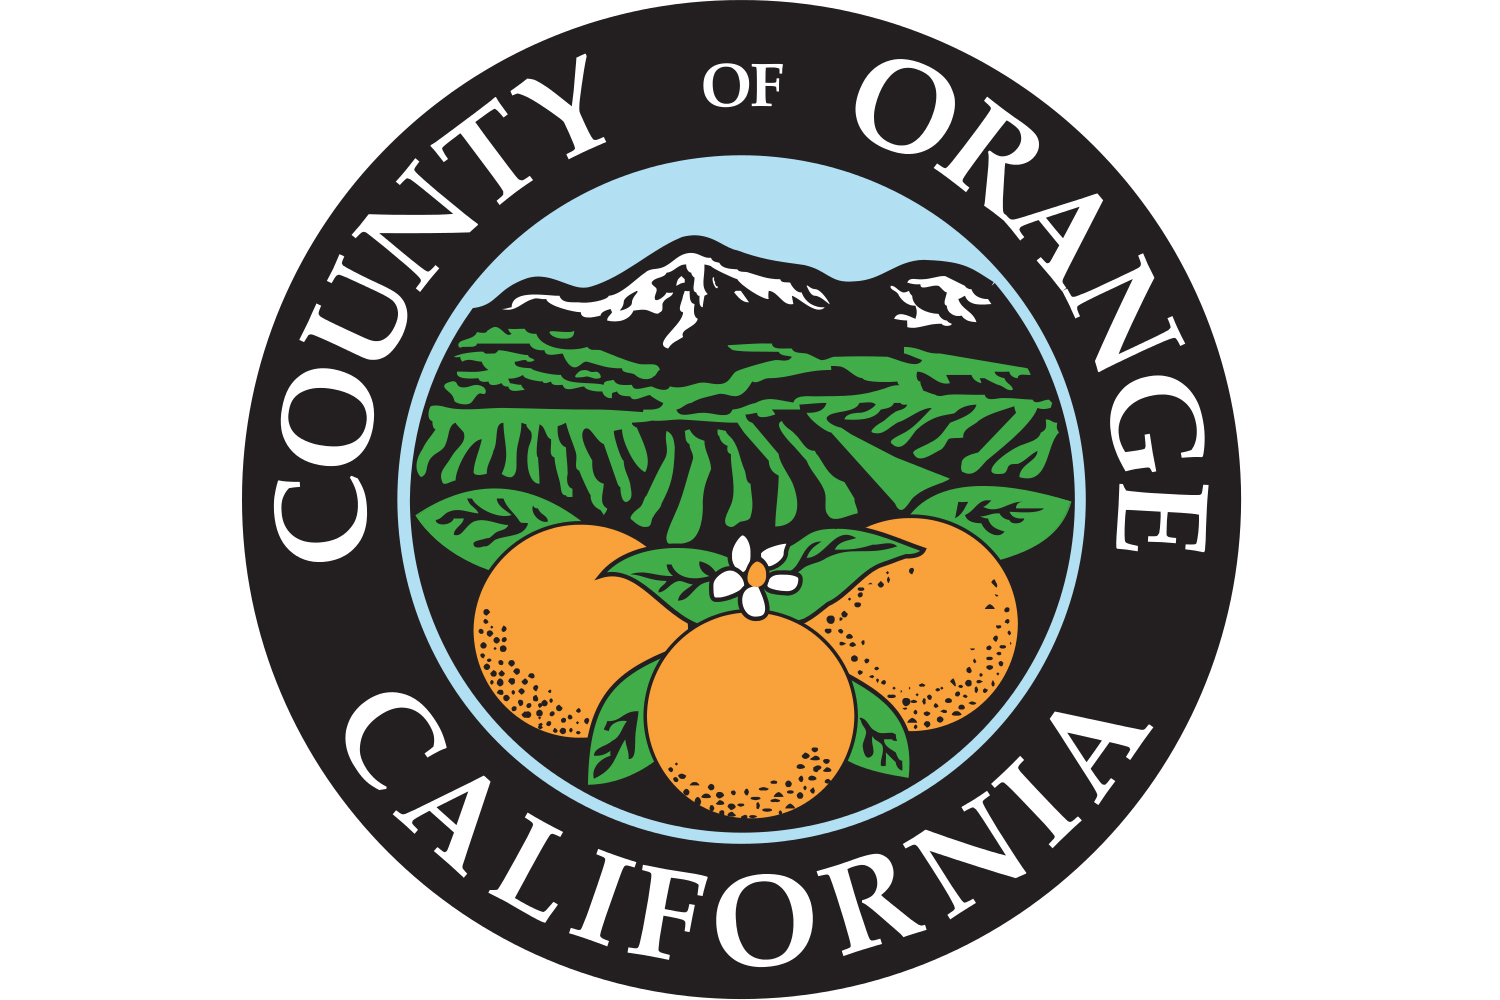 County of Orange Executive Orders and Actions